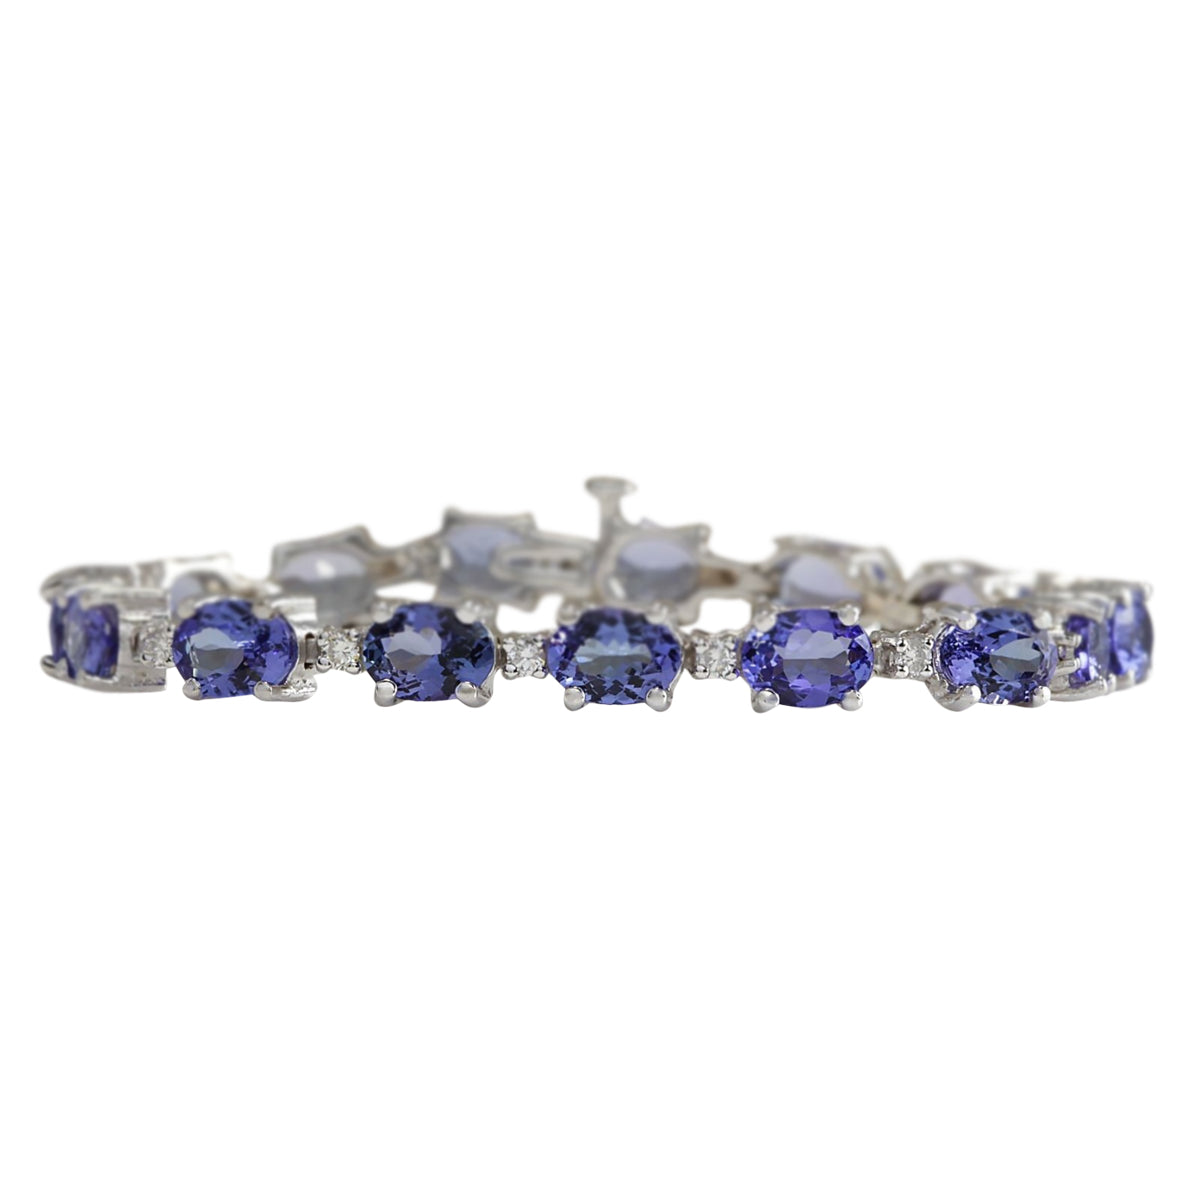 17.59 Carat Natural Tanzanite 14K White Gold Diamond Bracelet